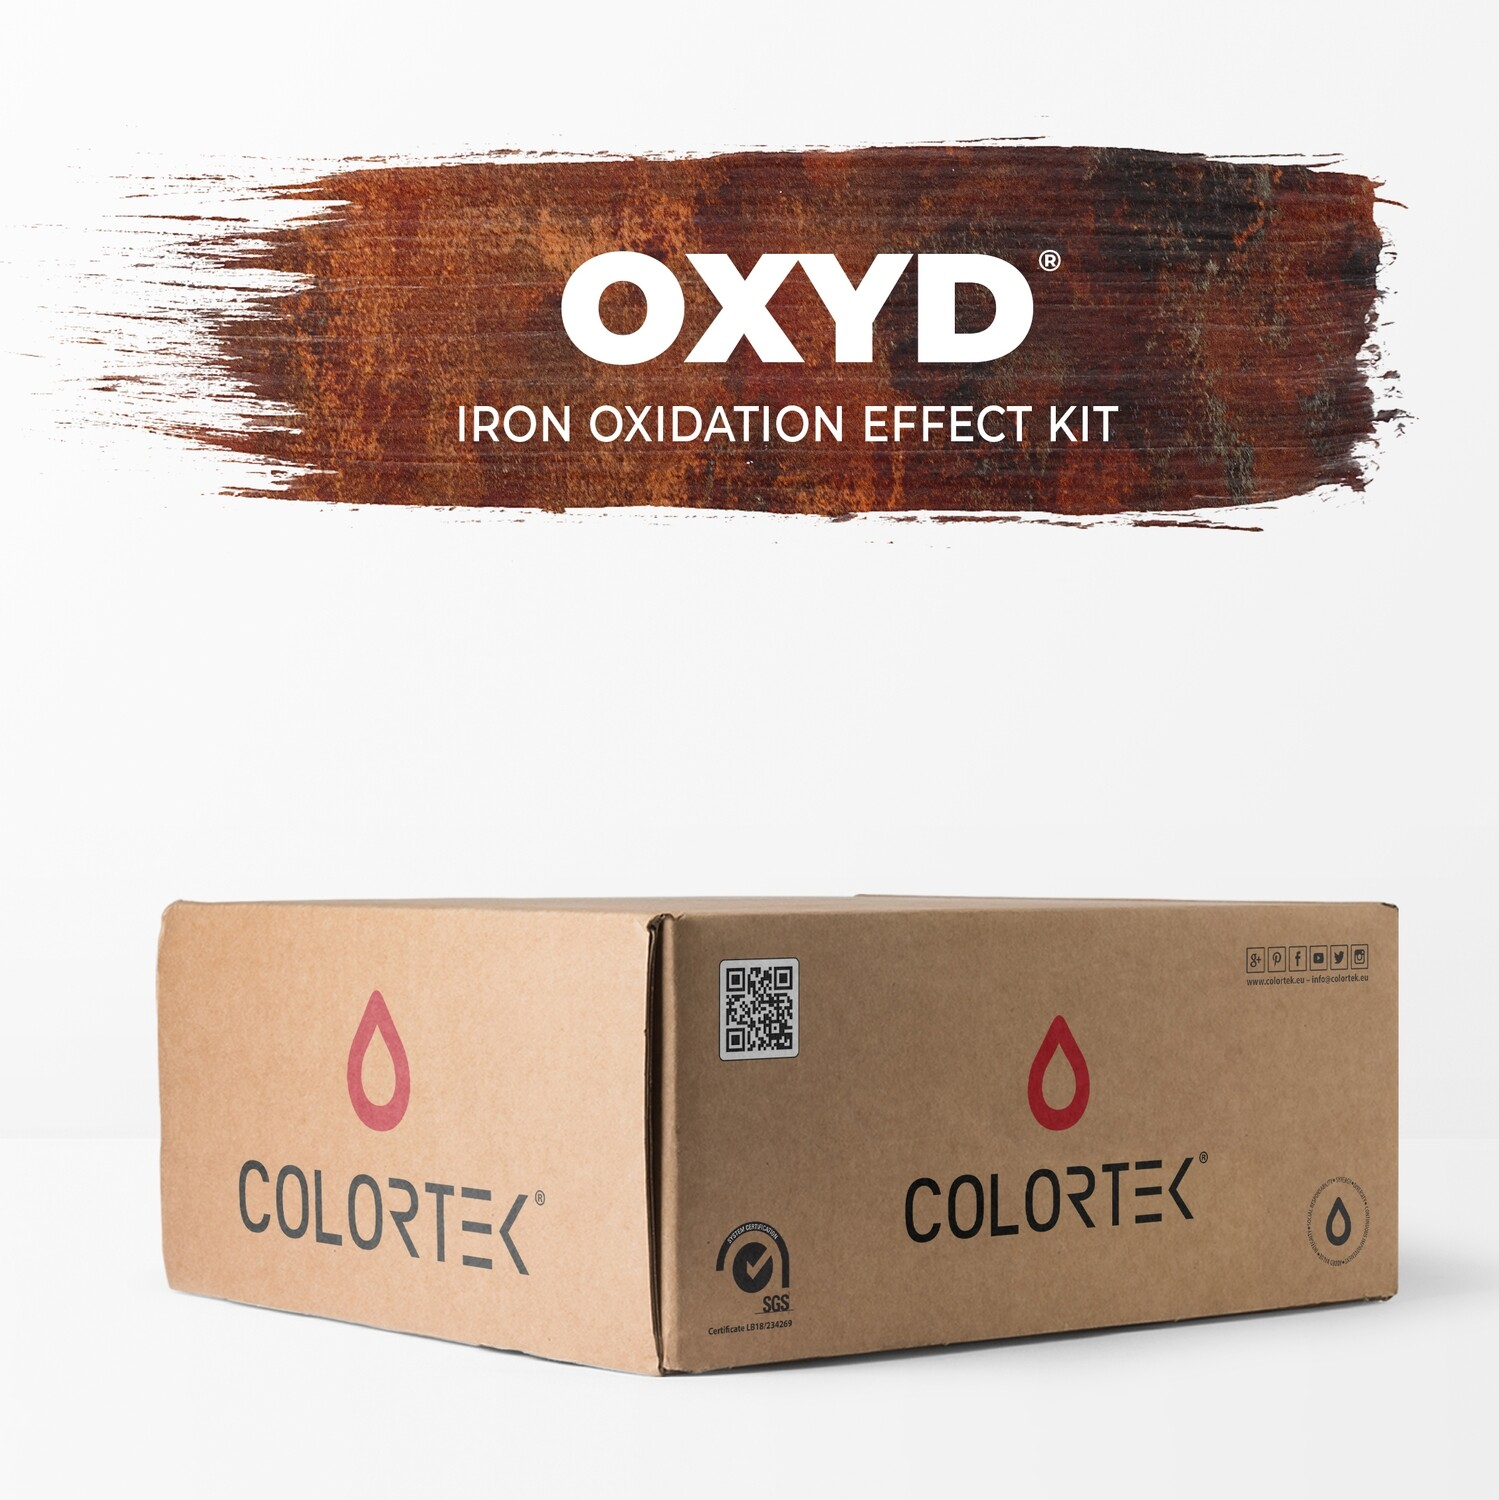 Oxyd - Iron Oxidation Effect Paint Kit for 5 sqm